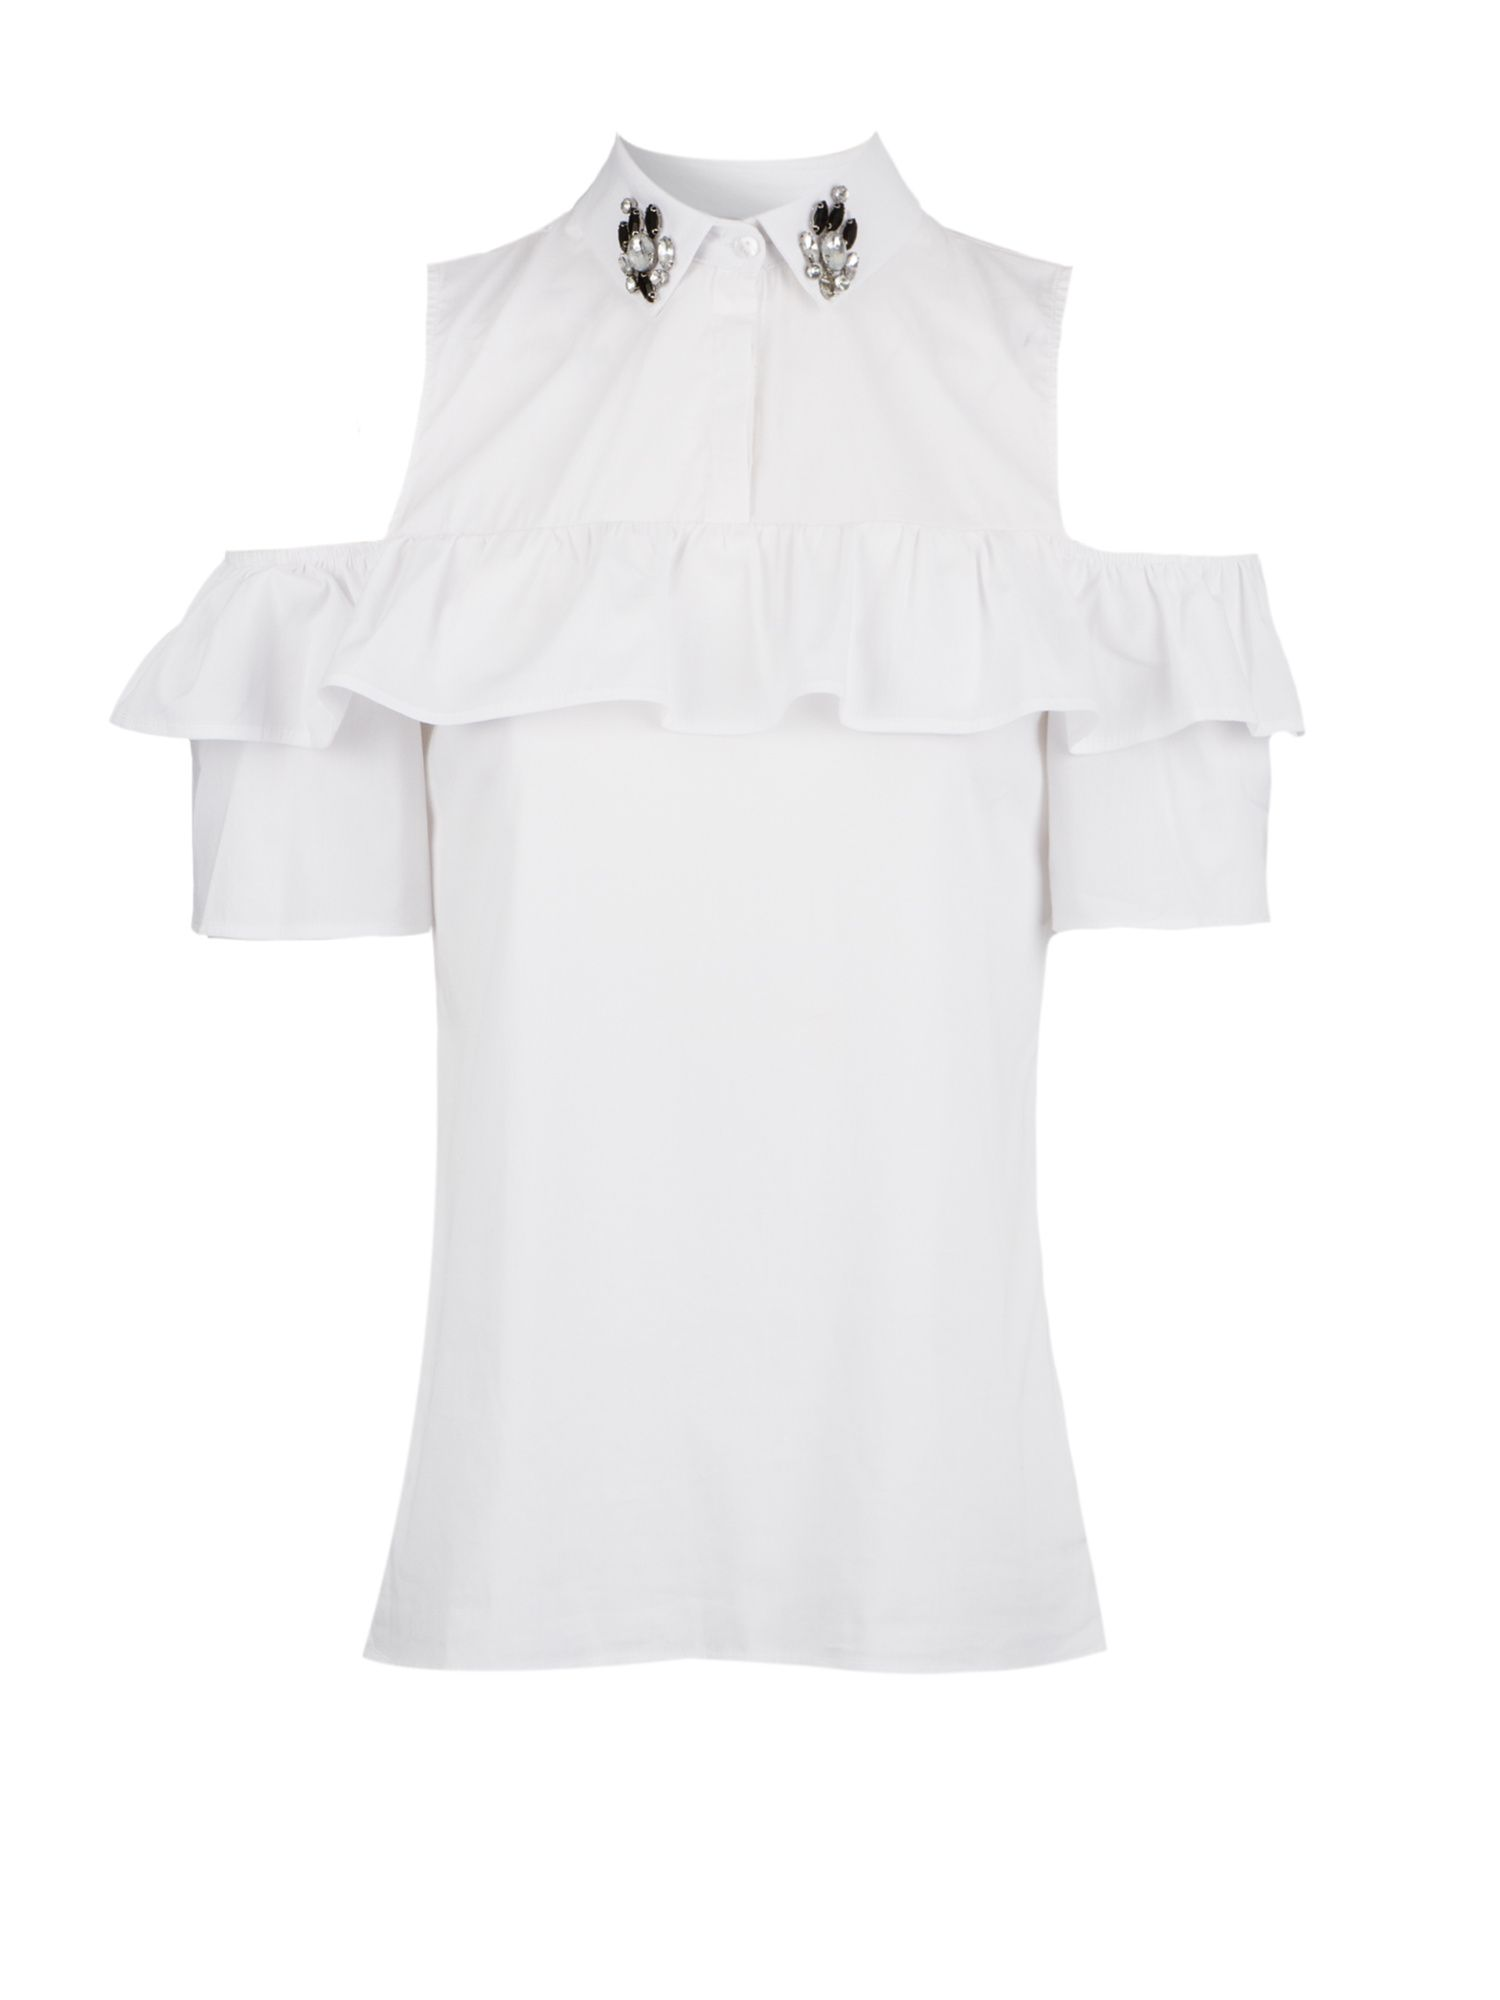 Morgan Poplin Blouse Rhinestones On The Collar, White